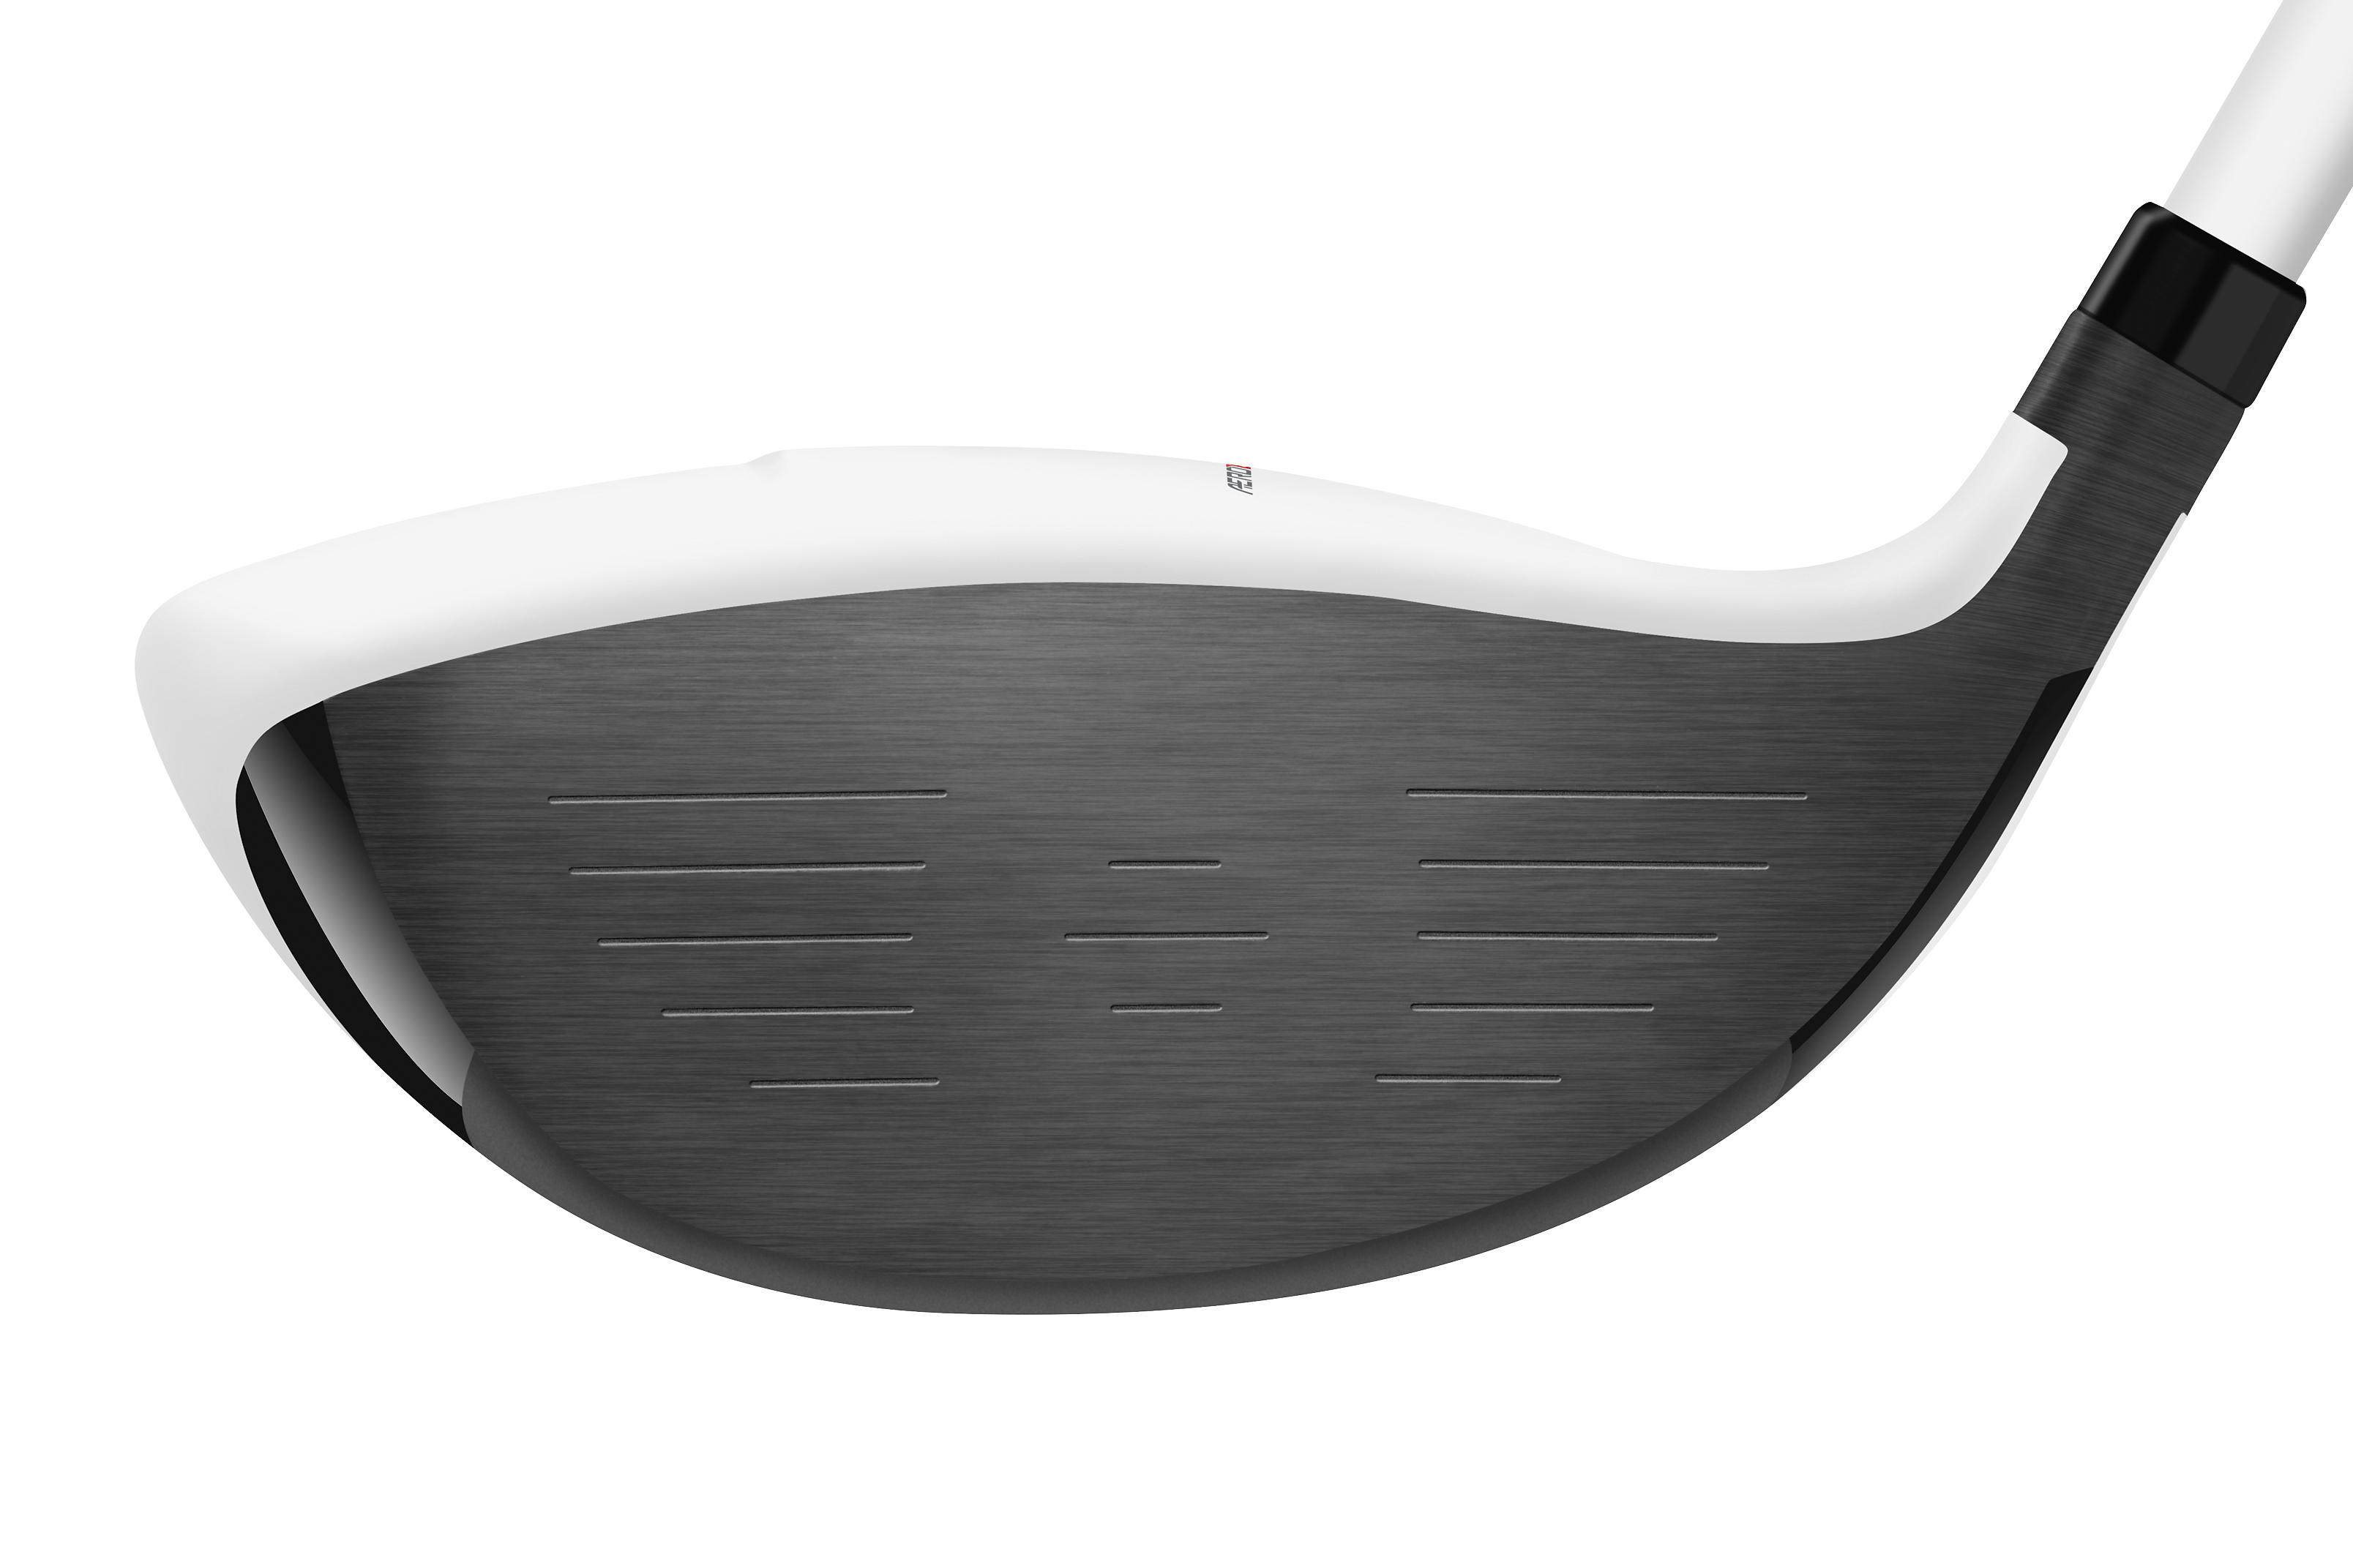 TaylorMade has added greater area to the low heel and toe of the AeroBurner Mini to improve mis-hits